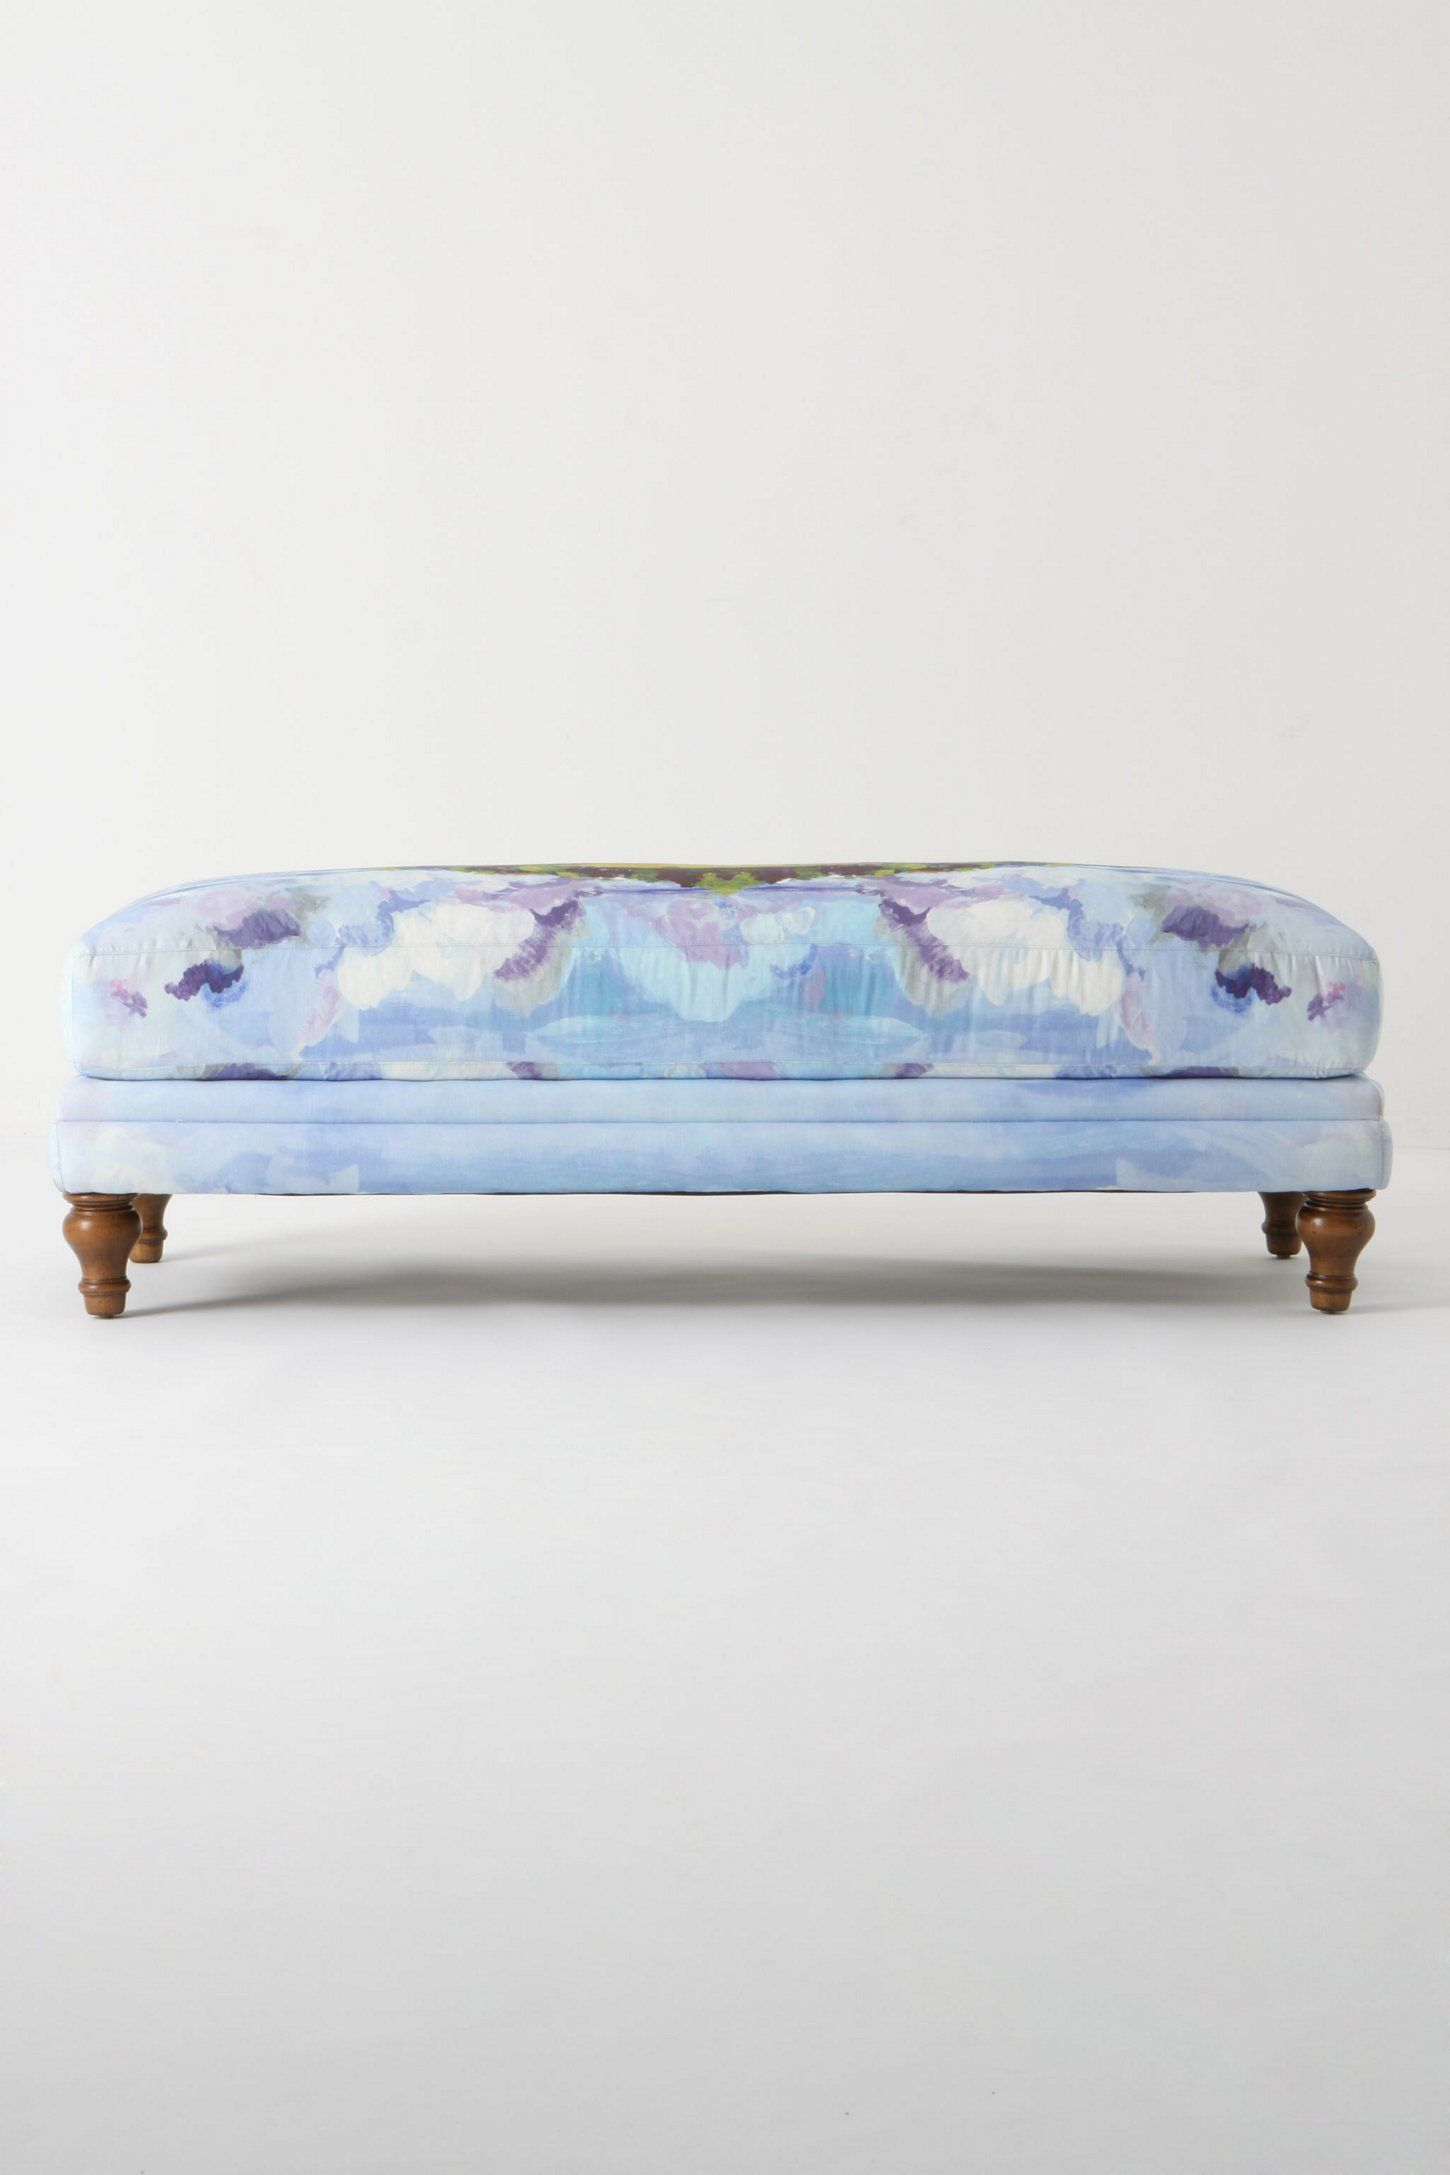 Fine Cotswold Bench Ottoman Landscape Furnishings Furniture Alphanode Cool Chair Designs And Ideas Alphanodeonline